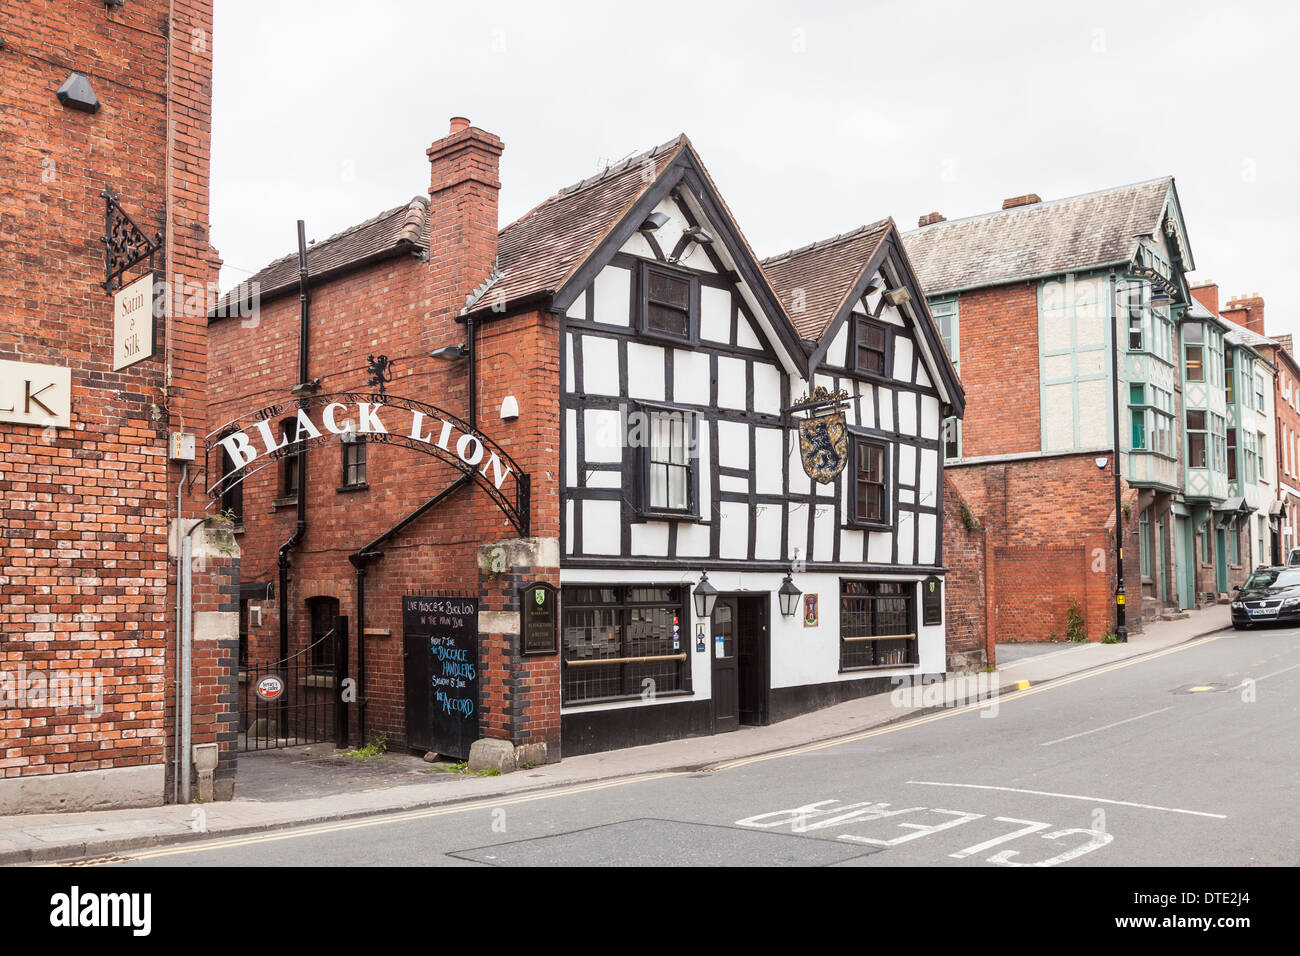 The Black Lion pub, a traditional historic black and white timbered building in Hereford, UK - Stock Image